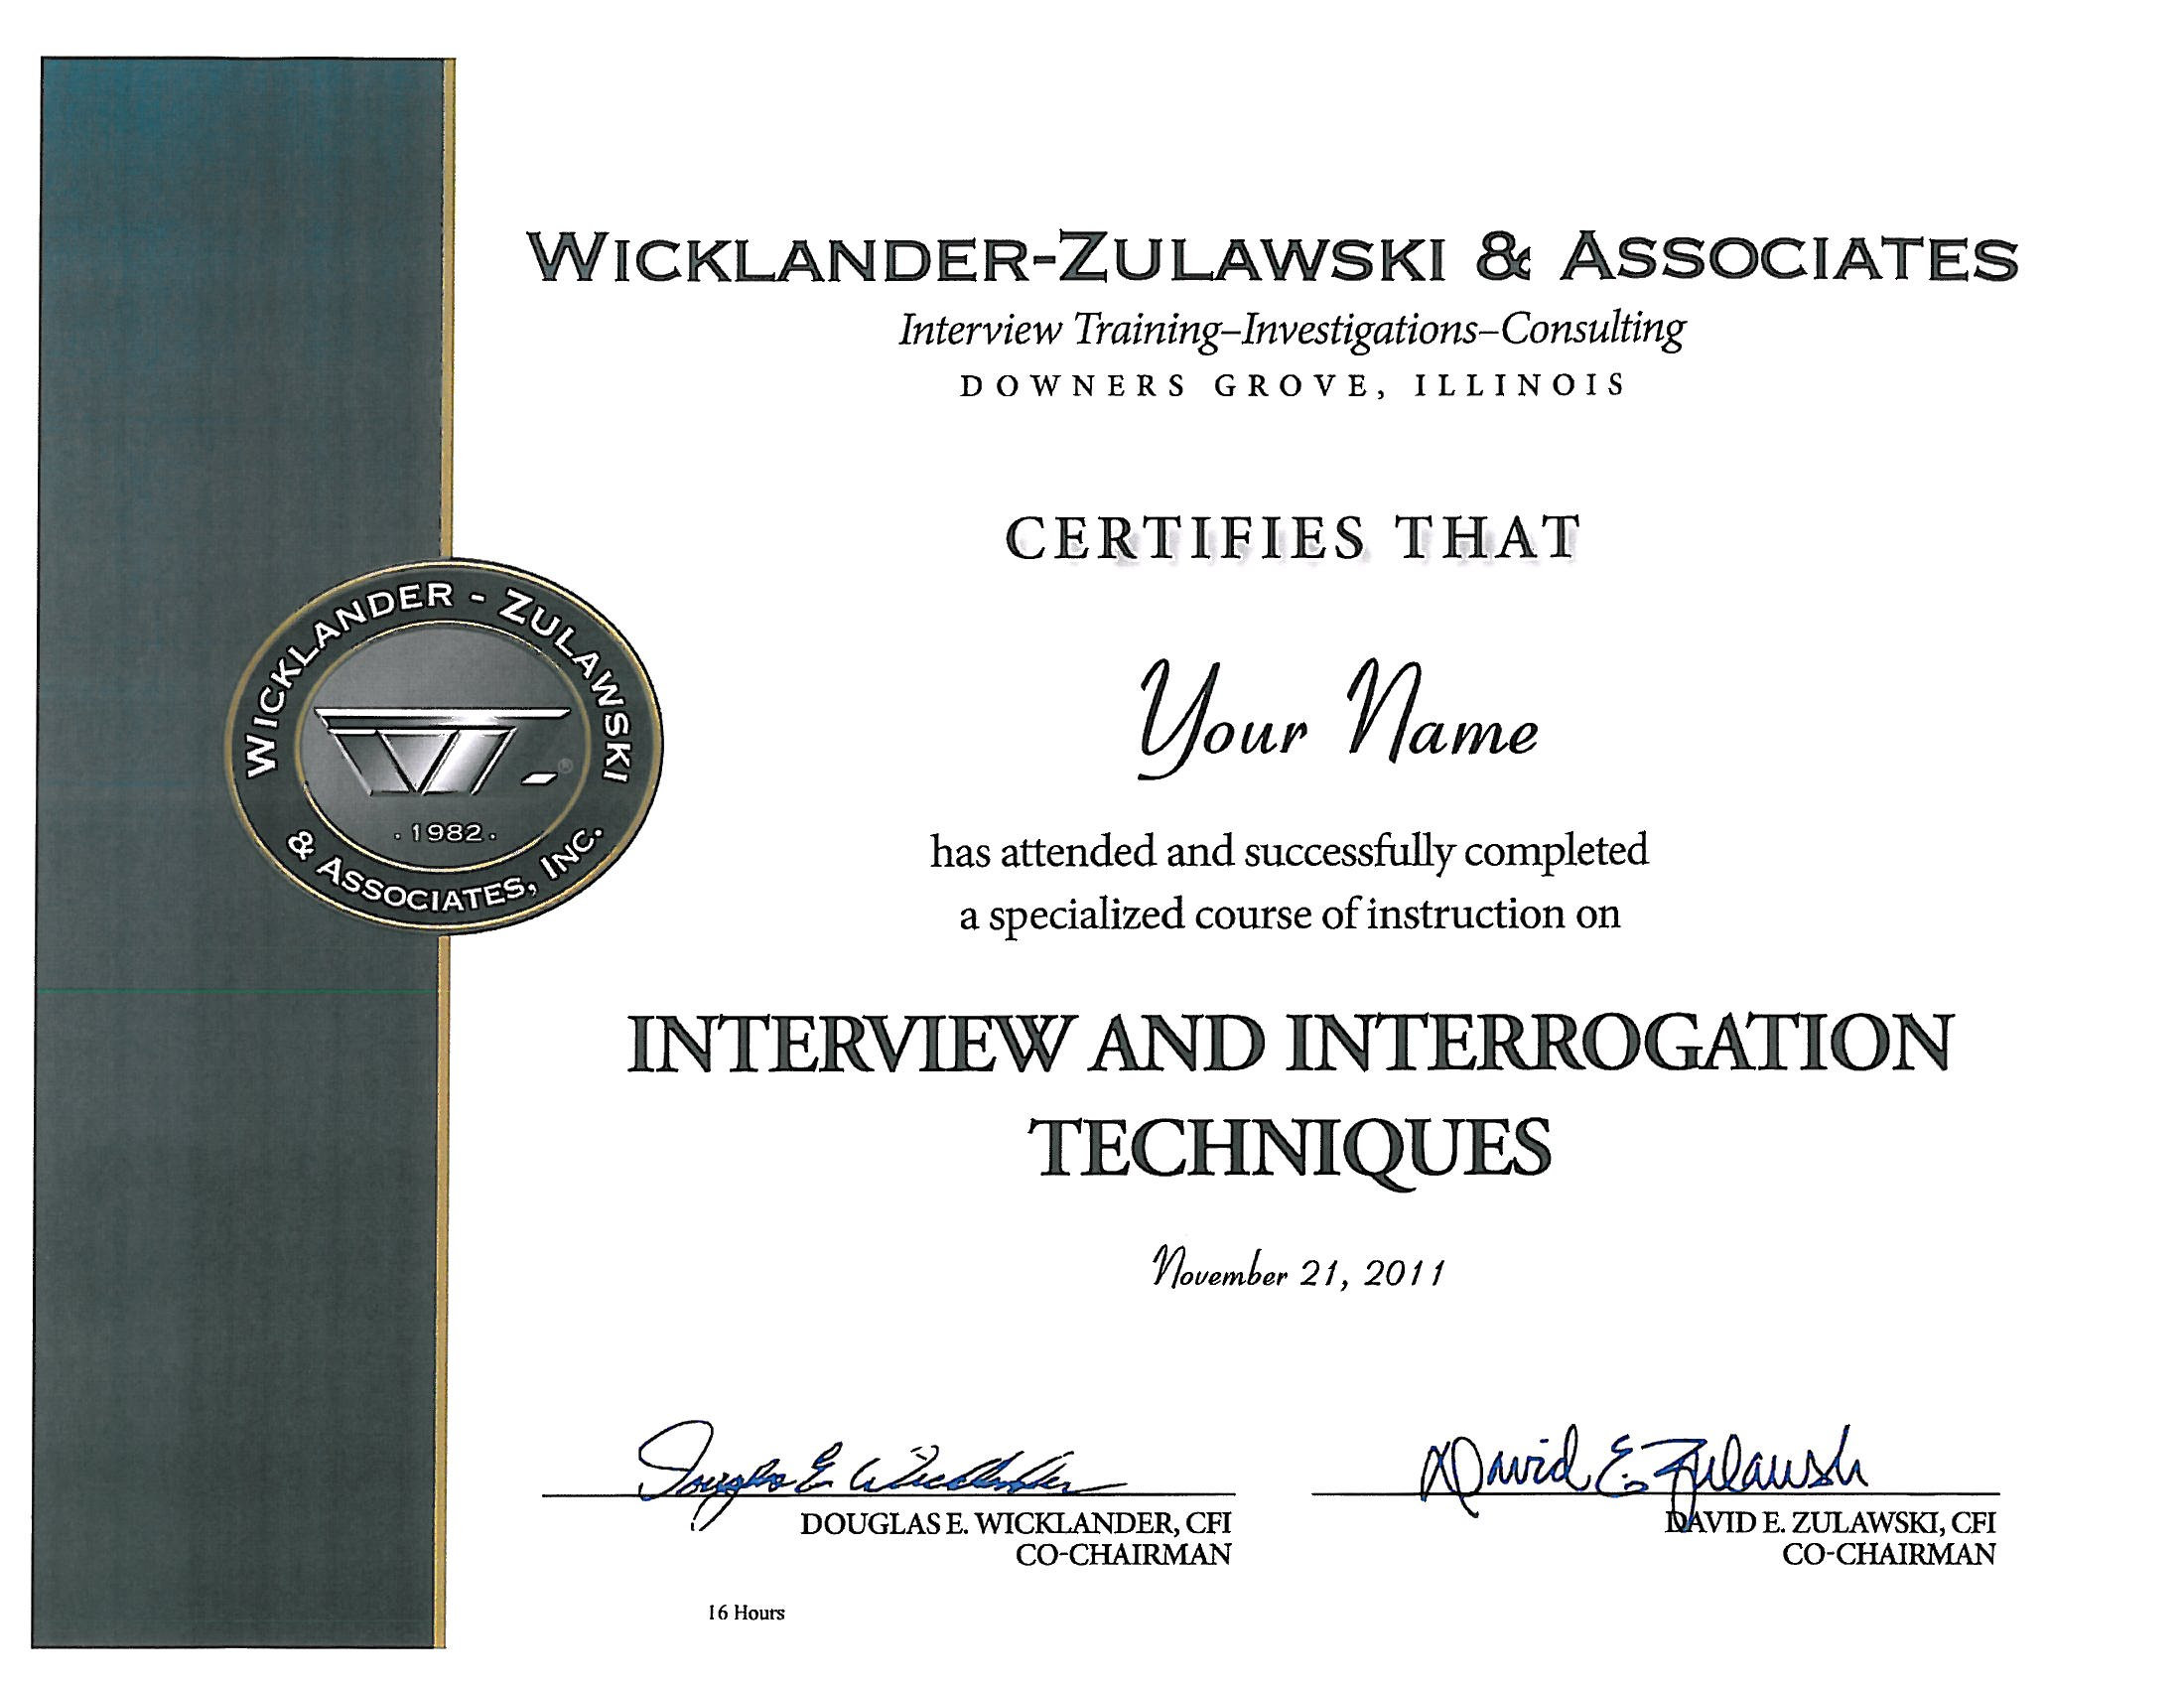 Wz certified wicklander zulawski have completed wz training courses throughout their careers these certificates do not certify expertise in the techniques taught at the seminar xflitez Image collections